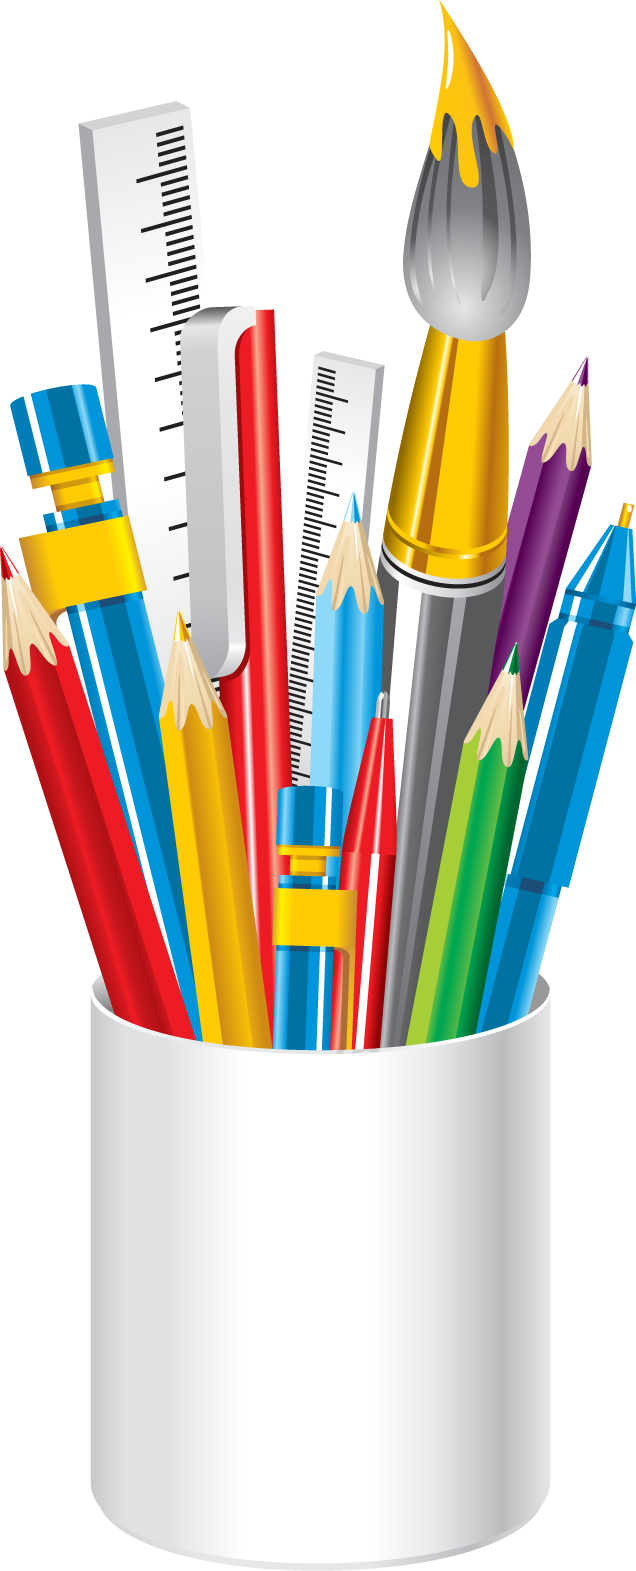 School supplies border clipart clip royalty free library Web Design & Development | Pinterest | Art supplies and Clip art clip royalty free library